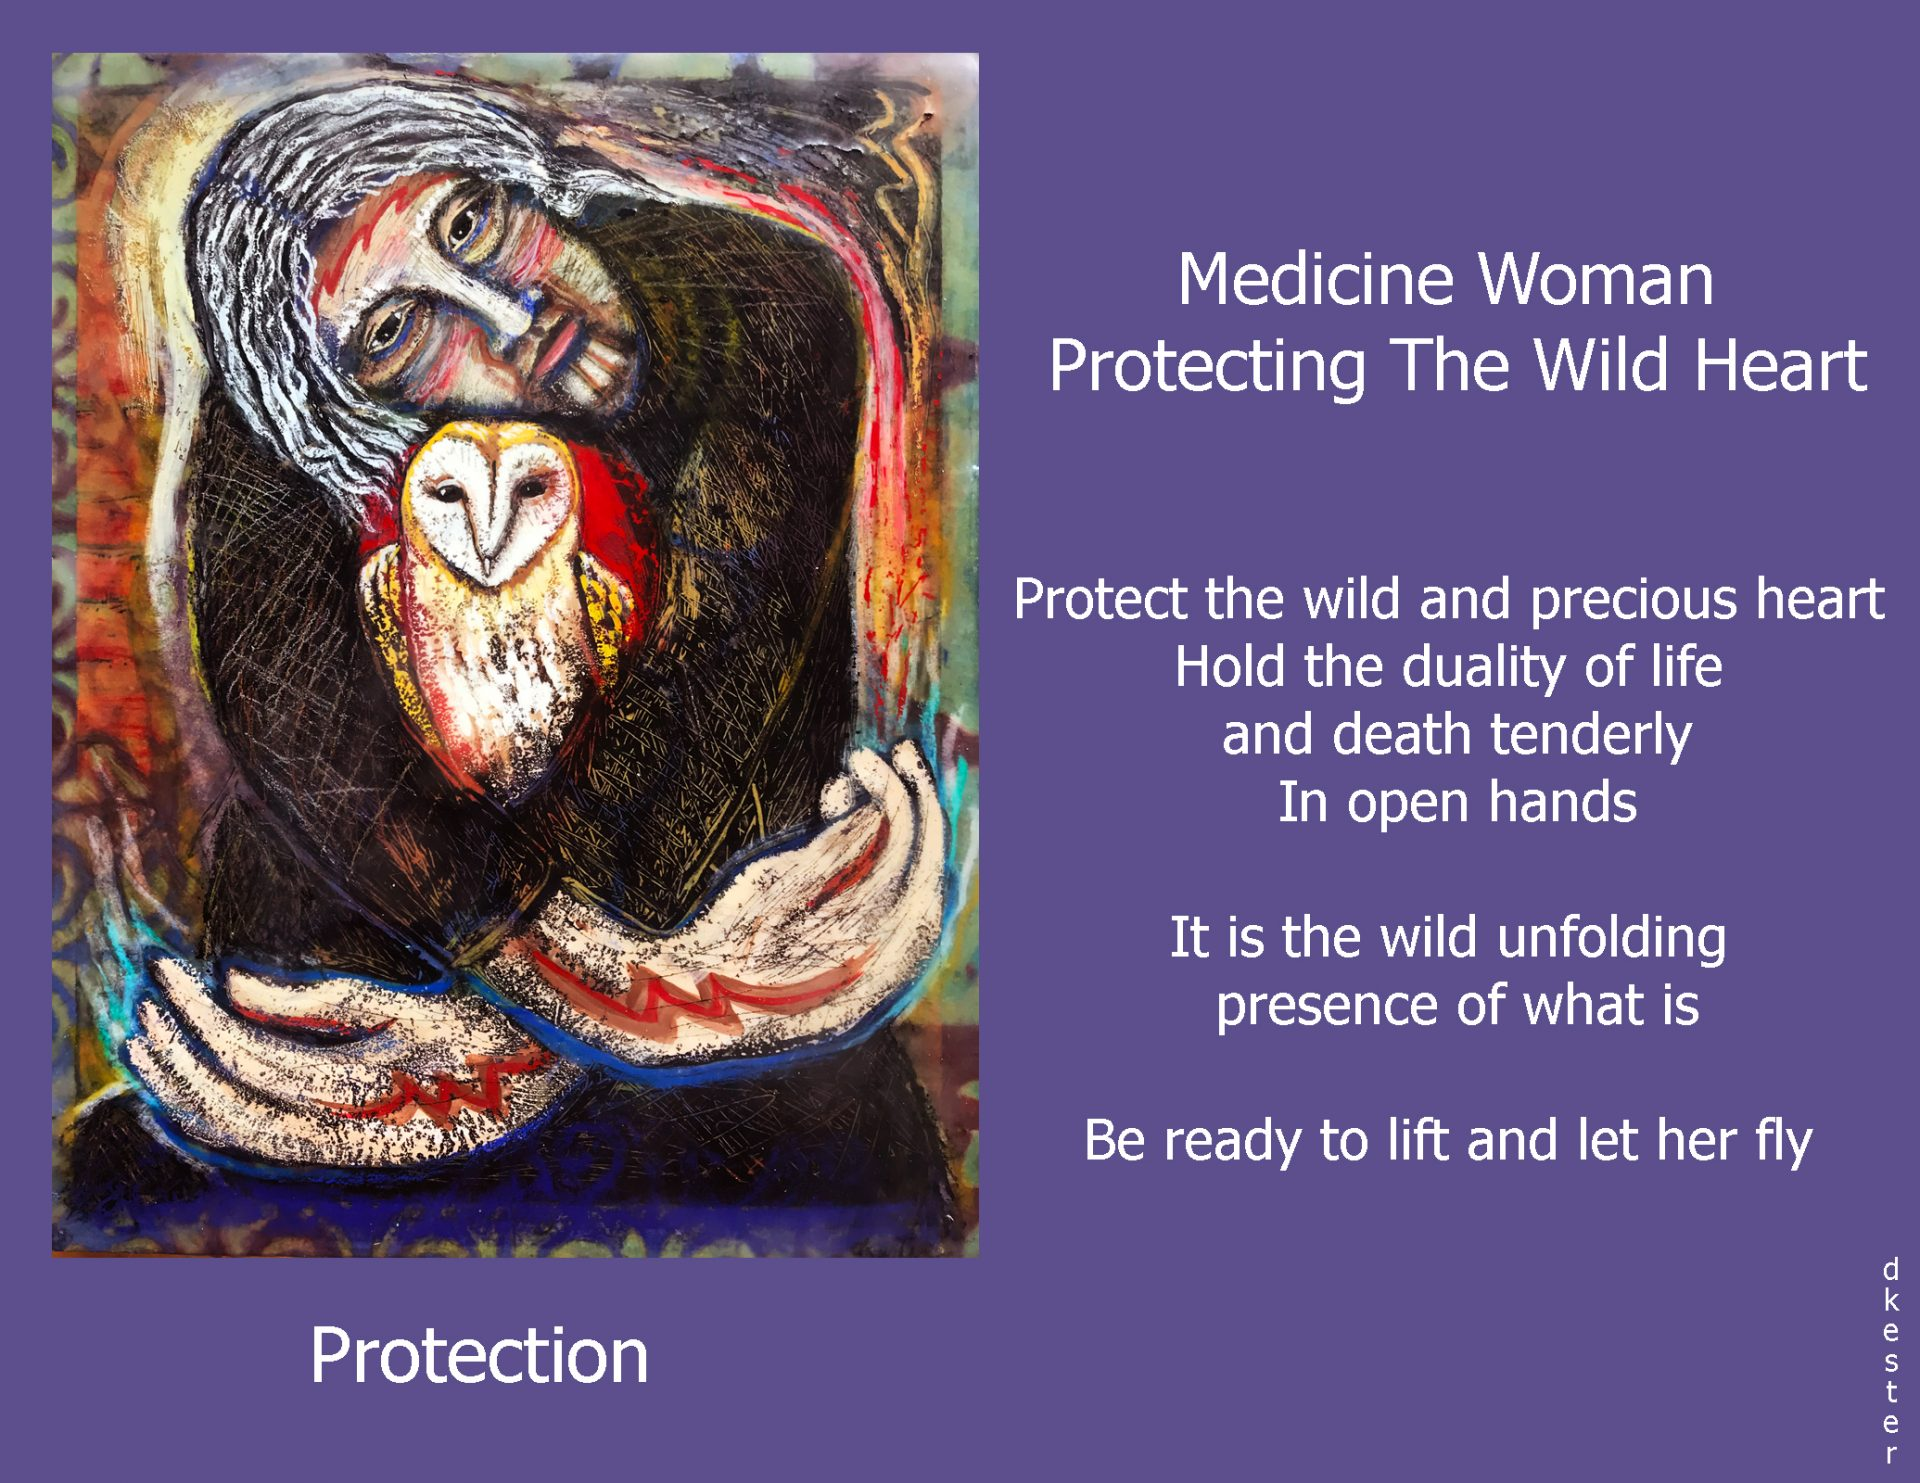 Denise Kester: Medicine Woman Protecting The Wild Heart